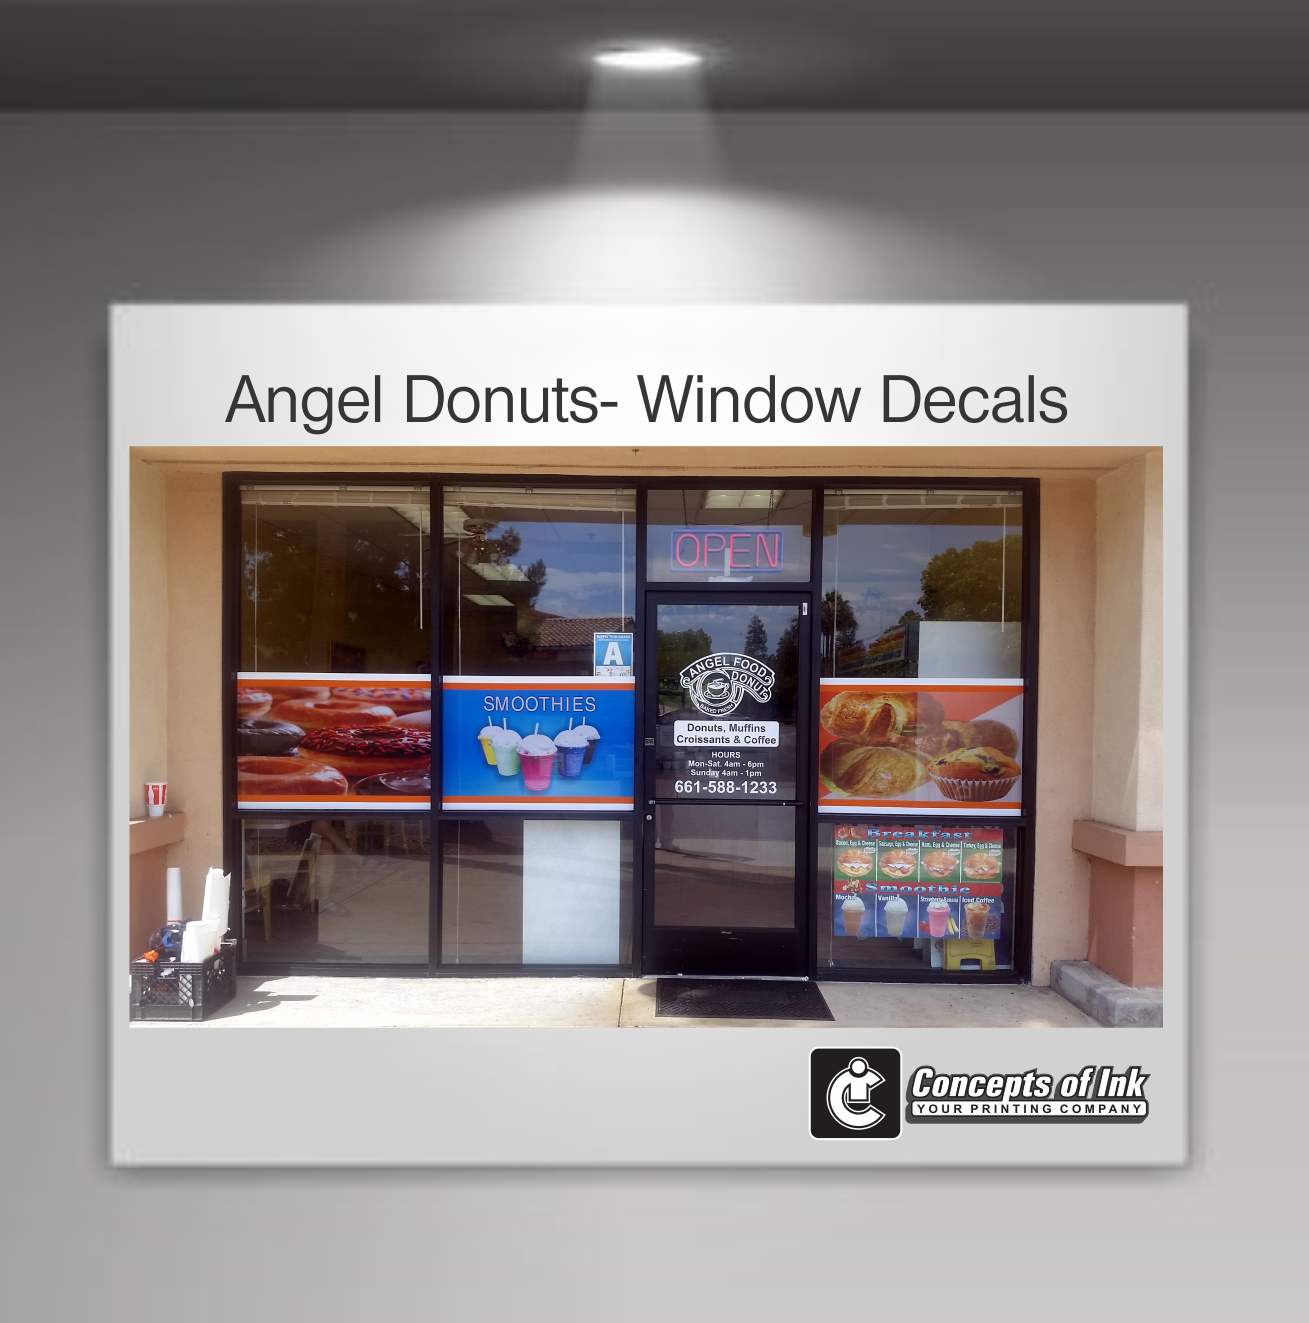 Angel Donuts